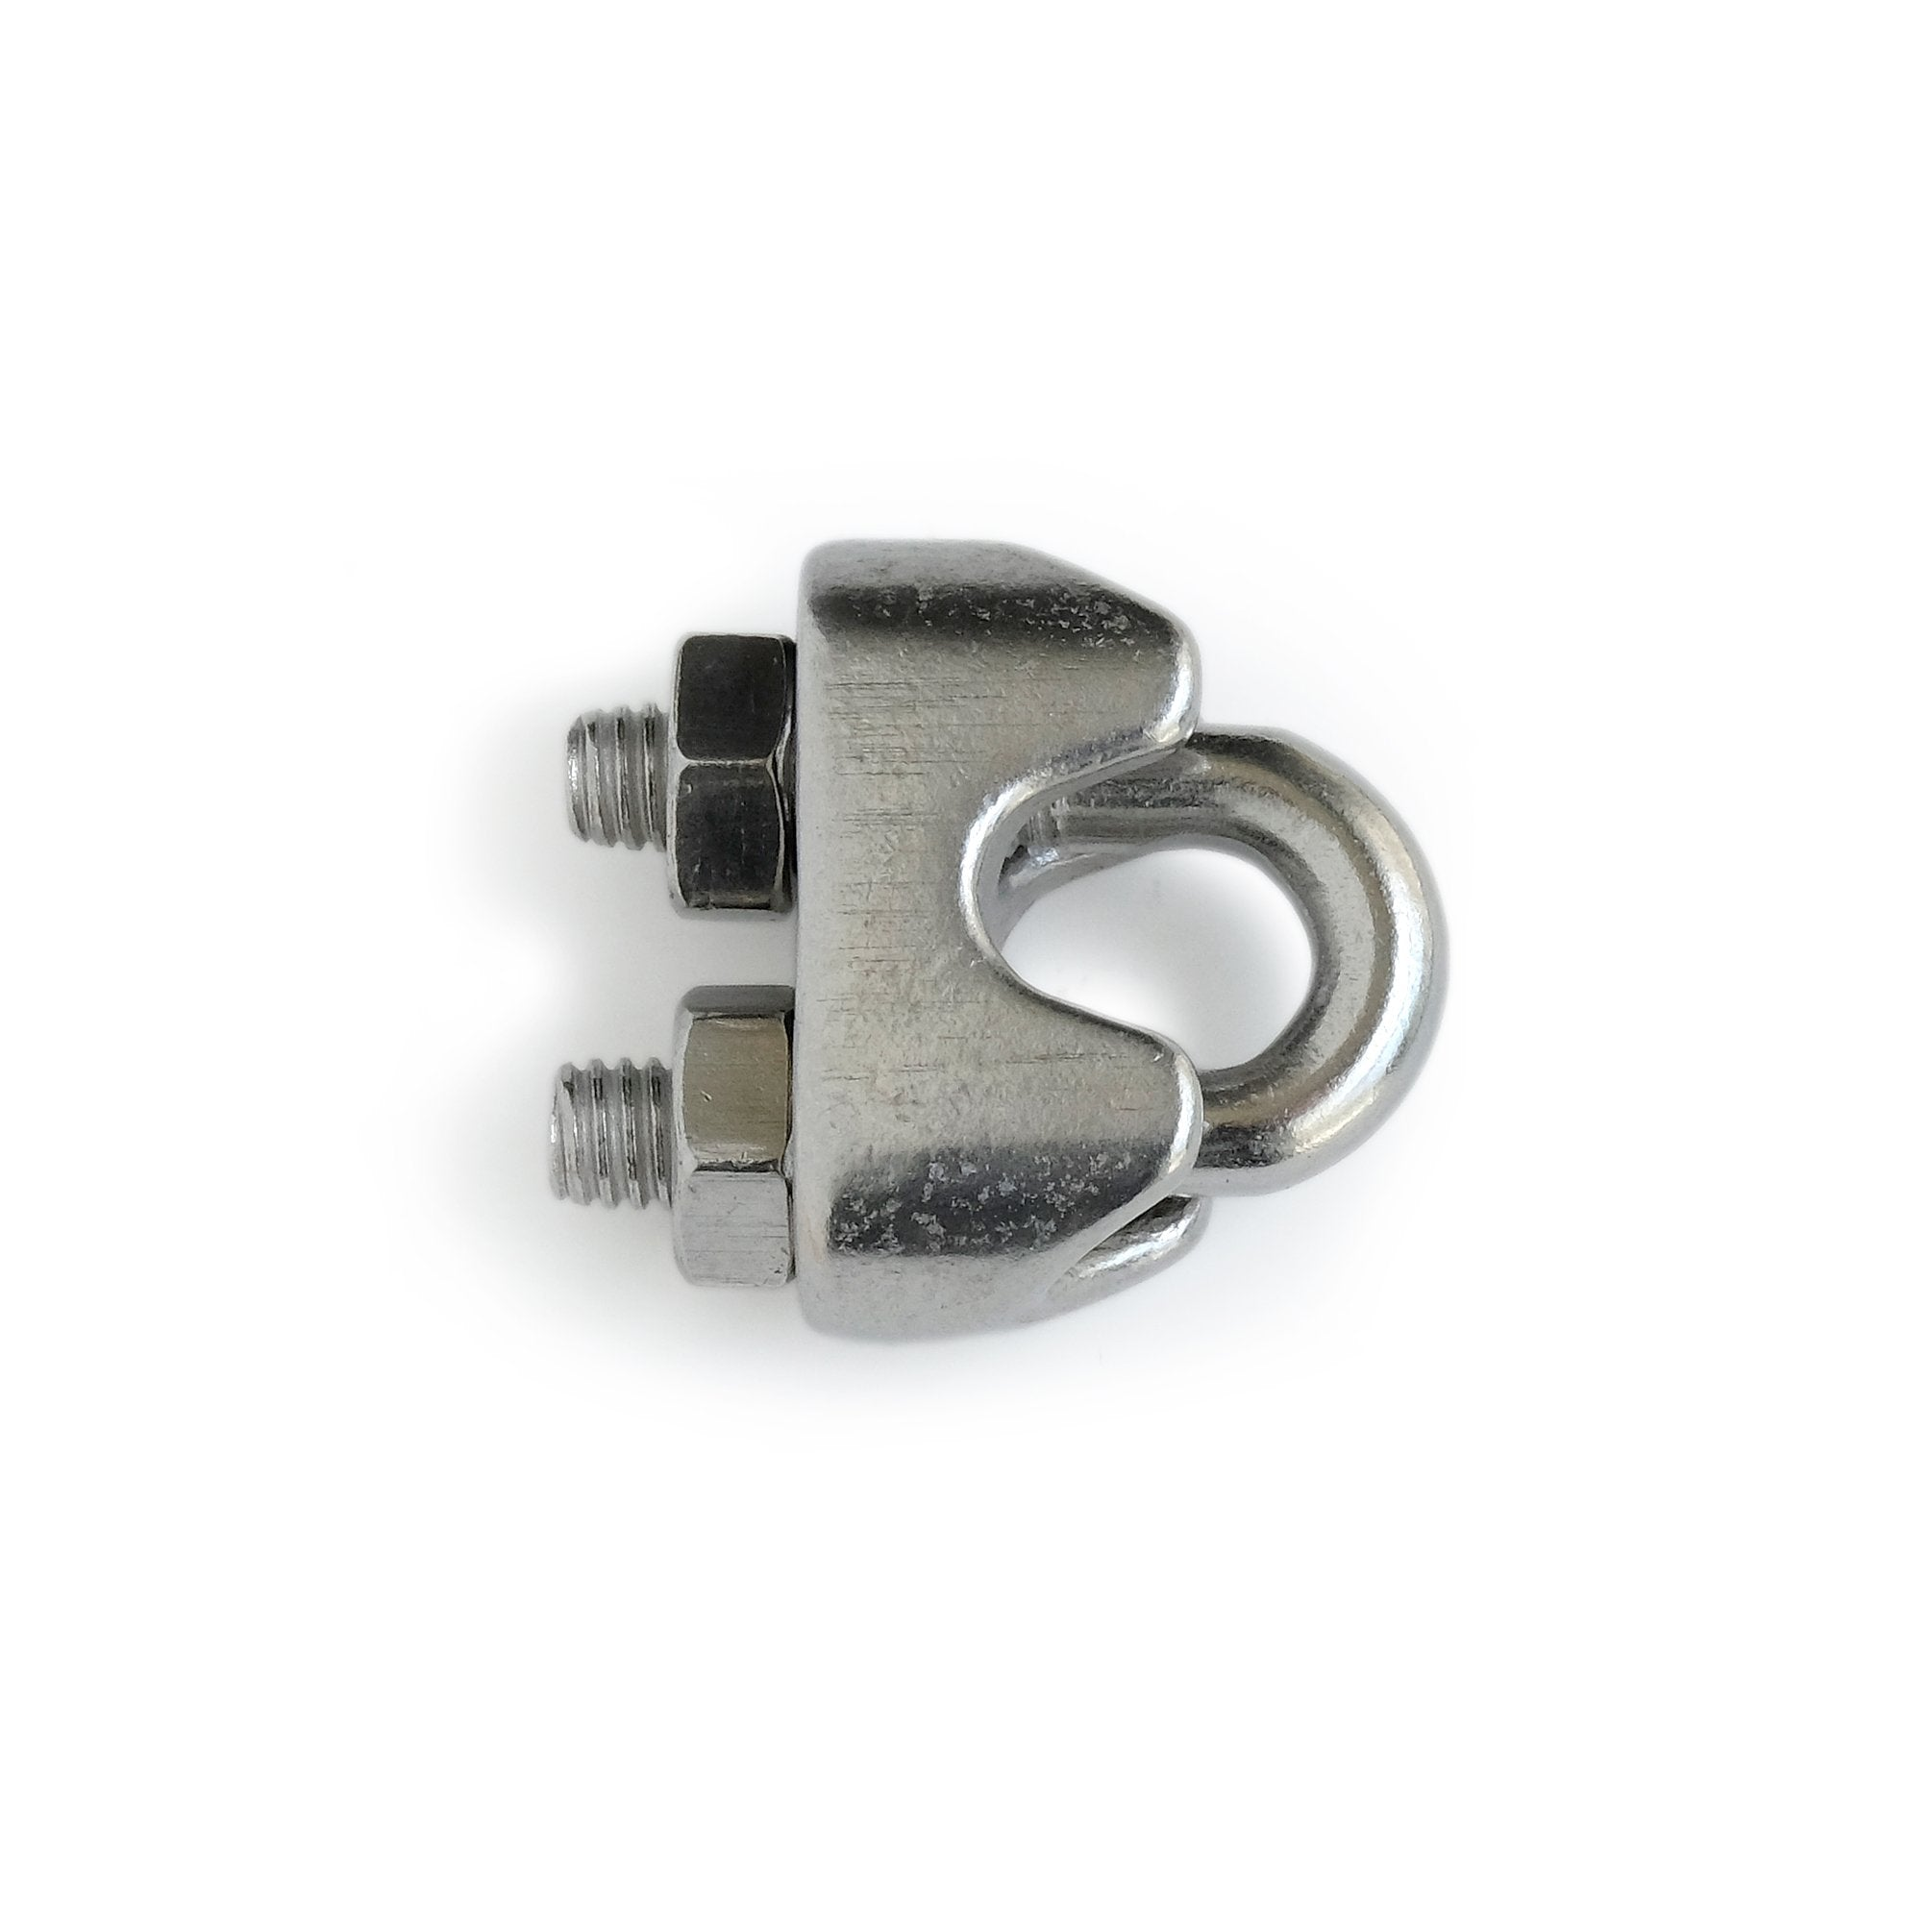 WGSS-3.0 (3mm Stainless steel wire grip)